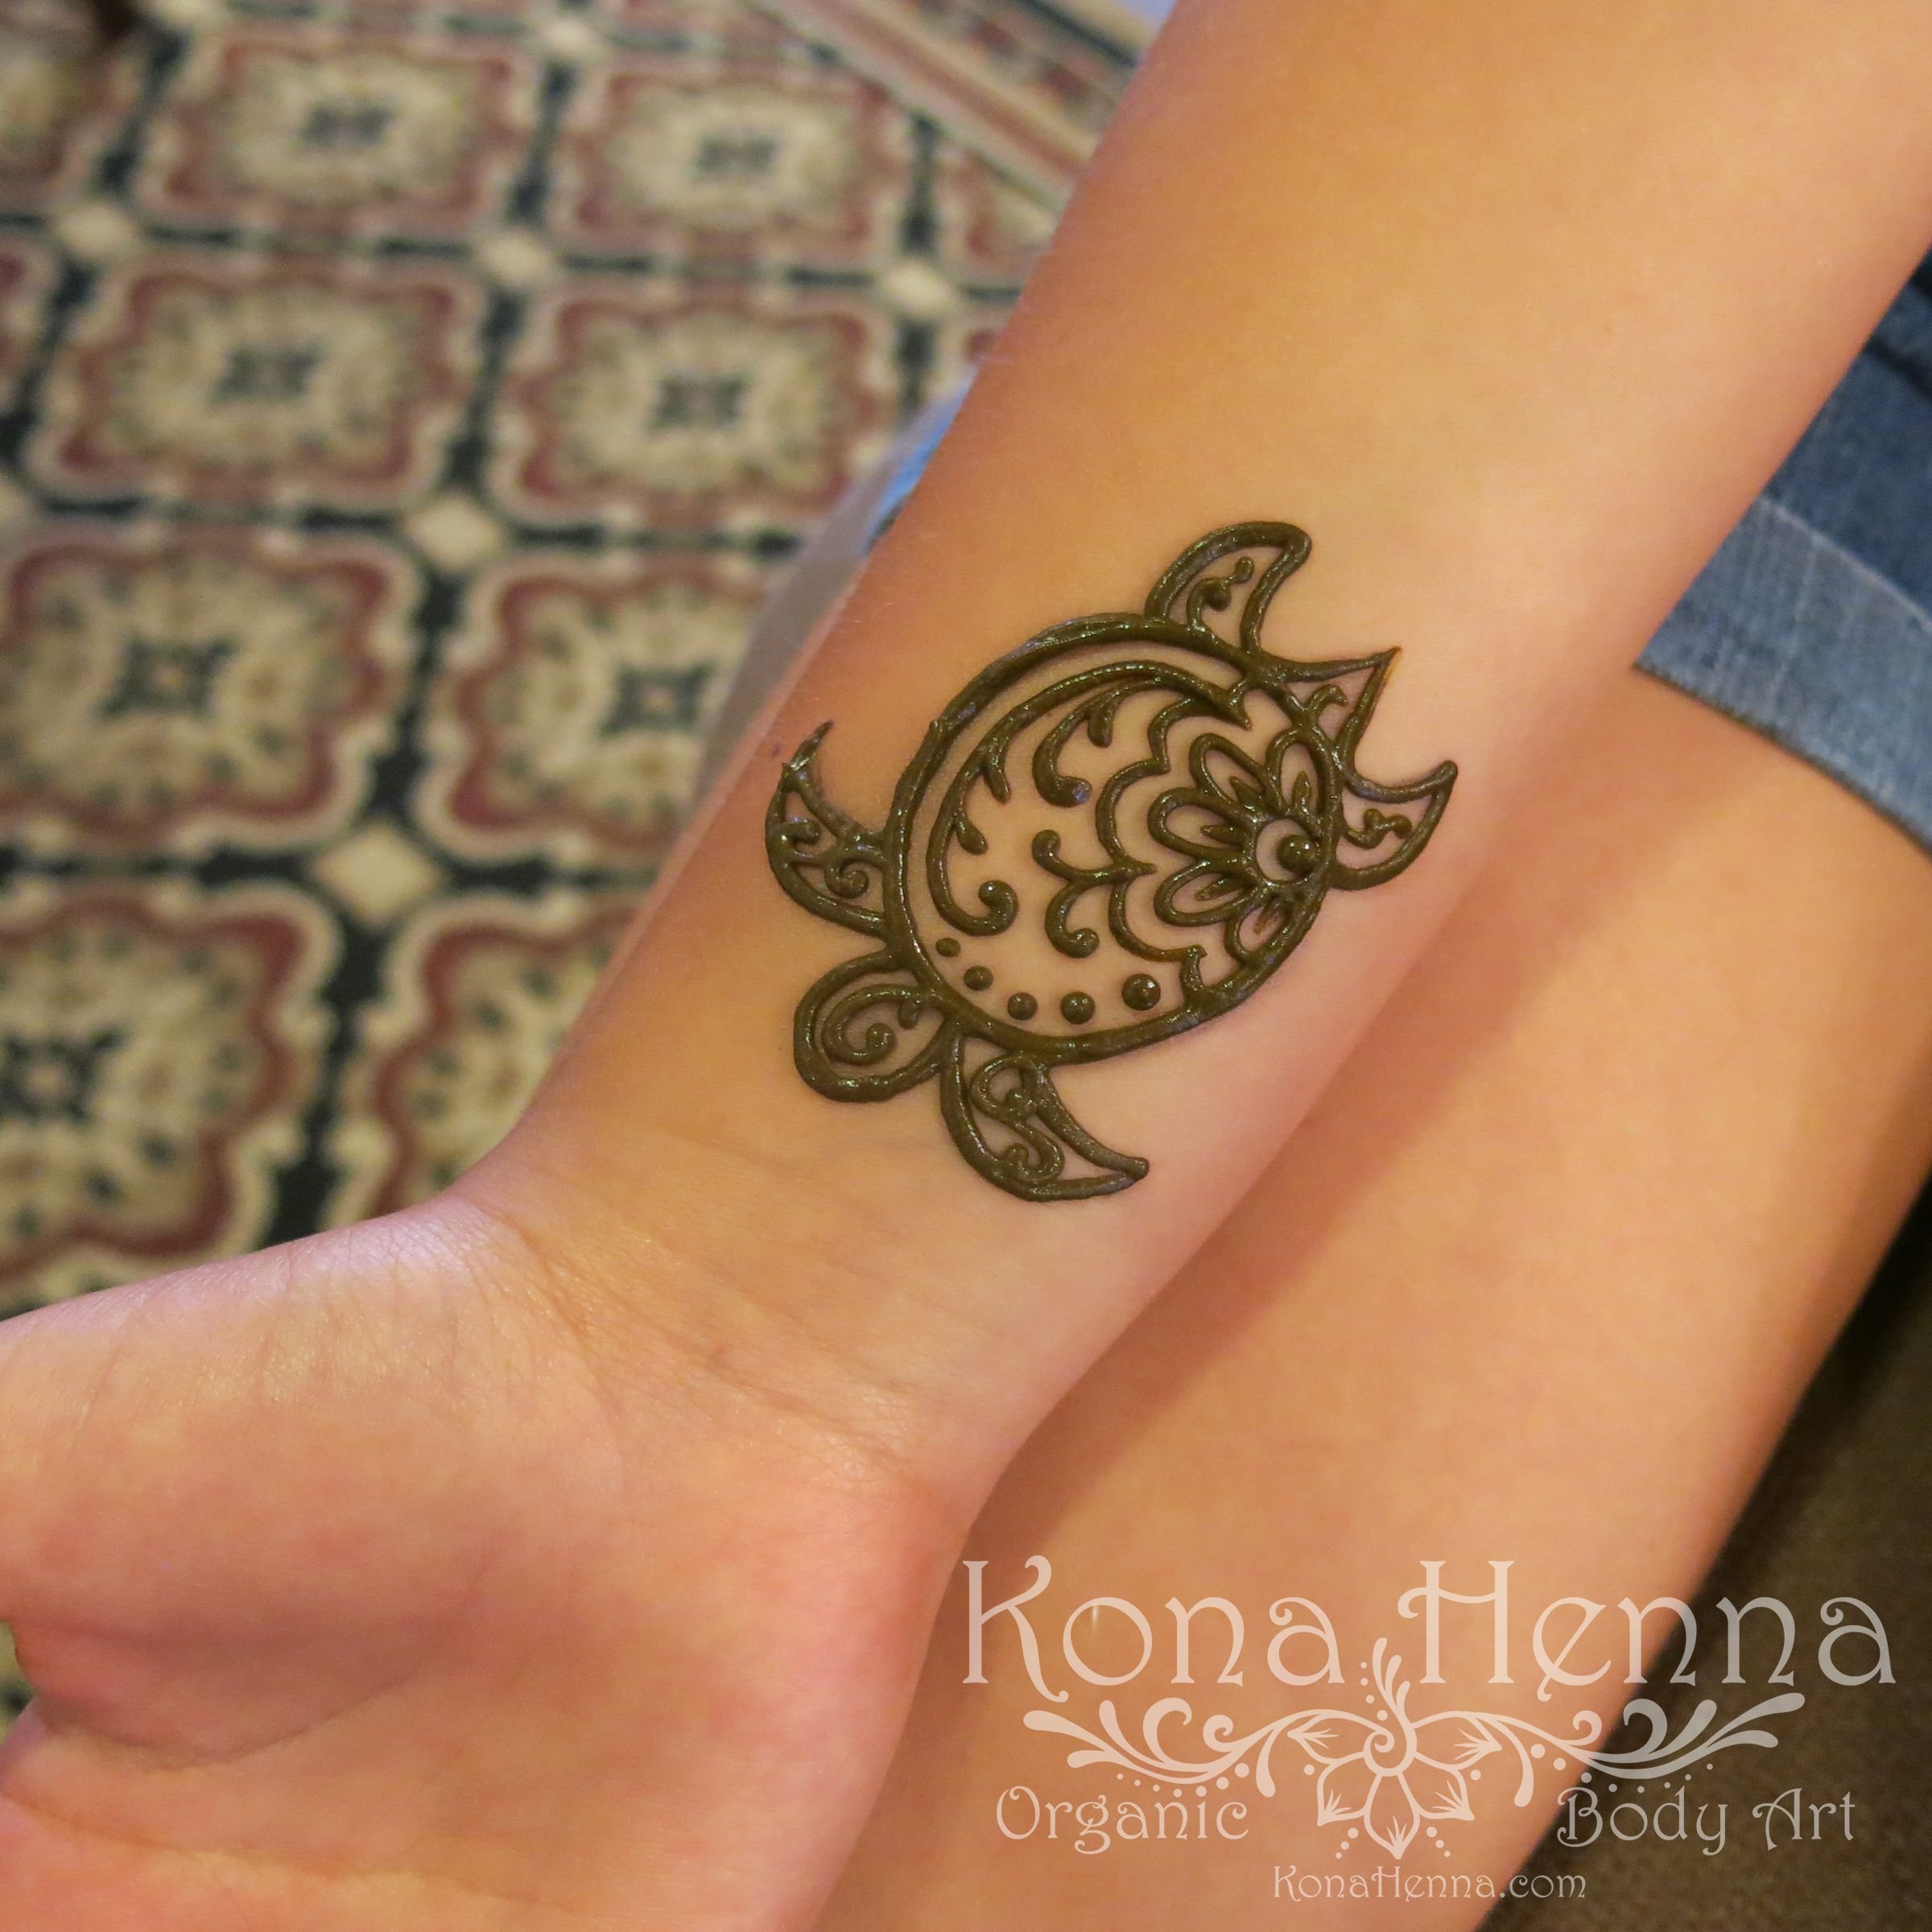 Organic henna products professional henna studio for Real henna tattoo